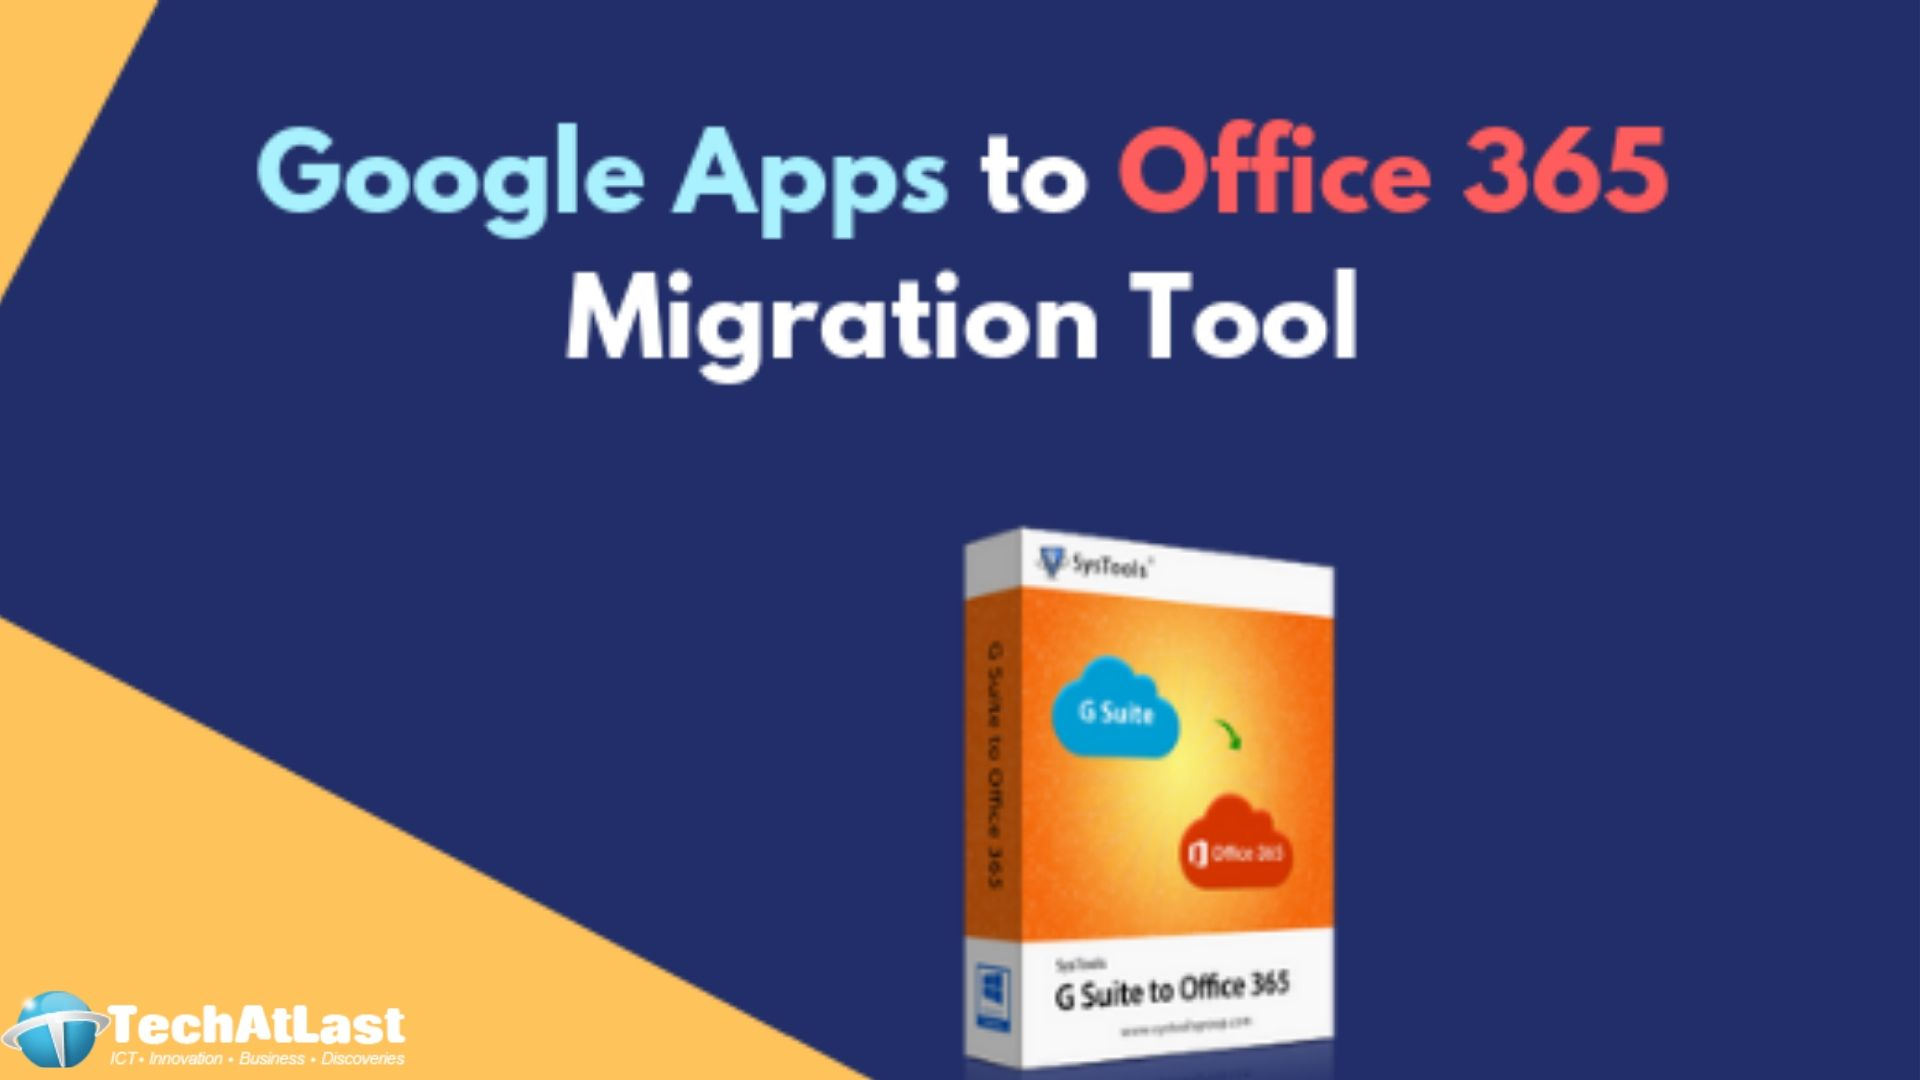 Google Apps to Office 365 Migration Tool - G Suite to O365